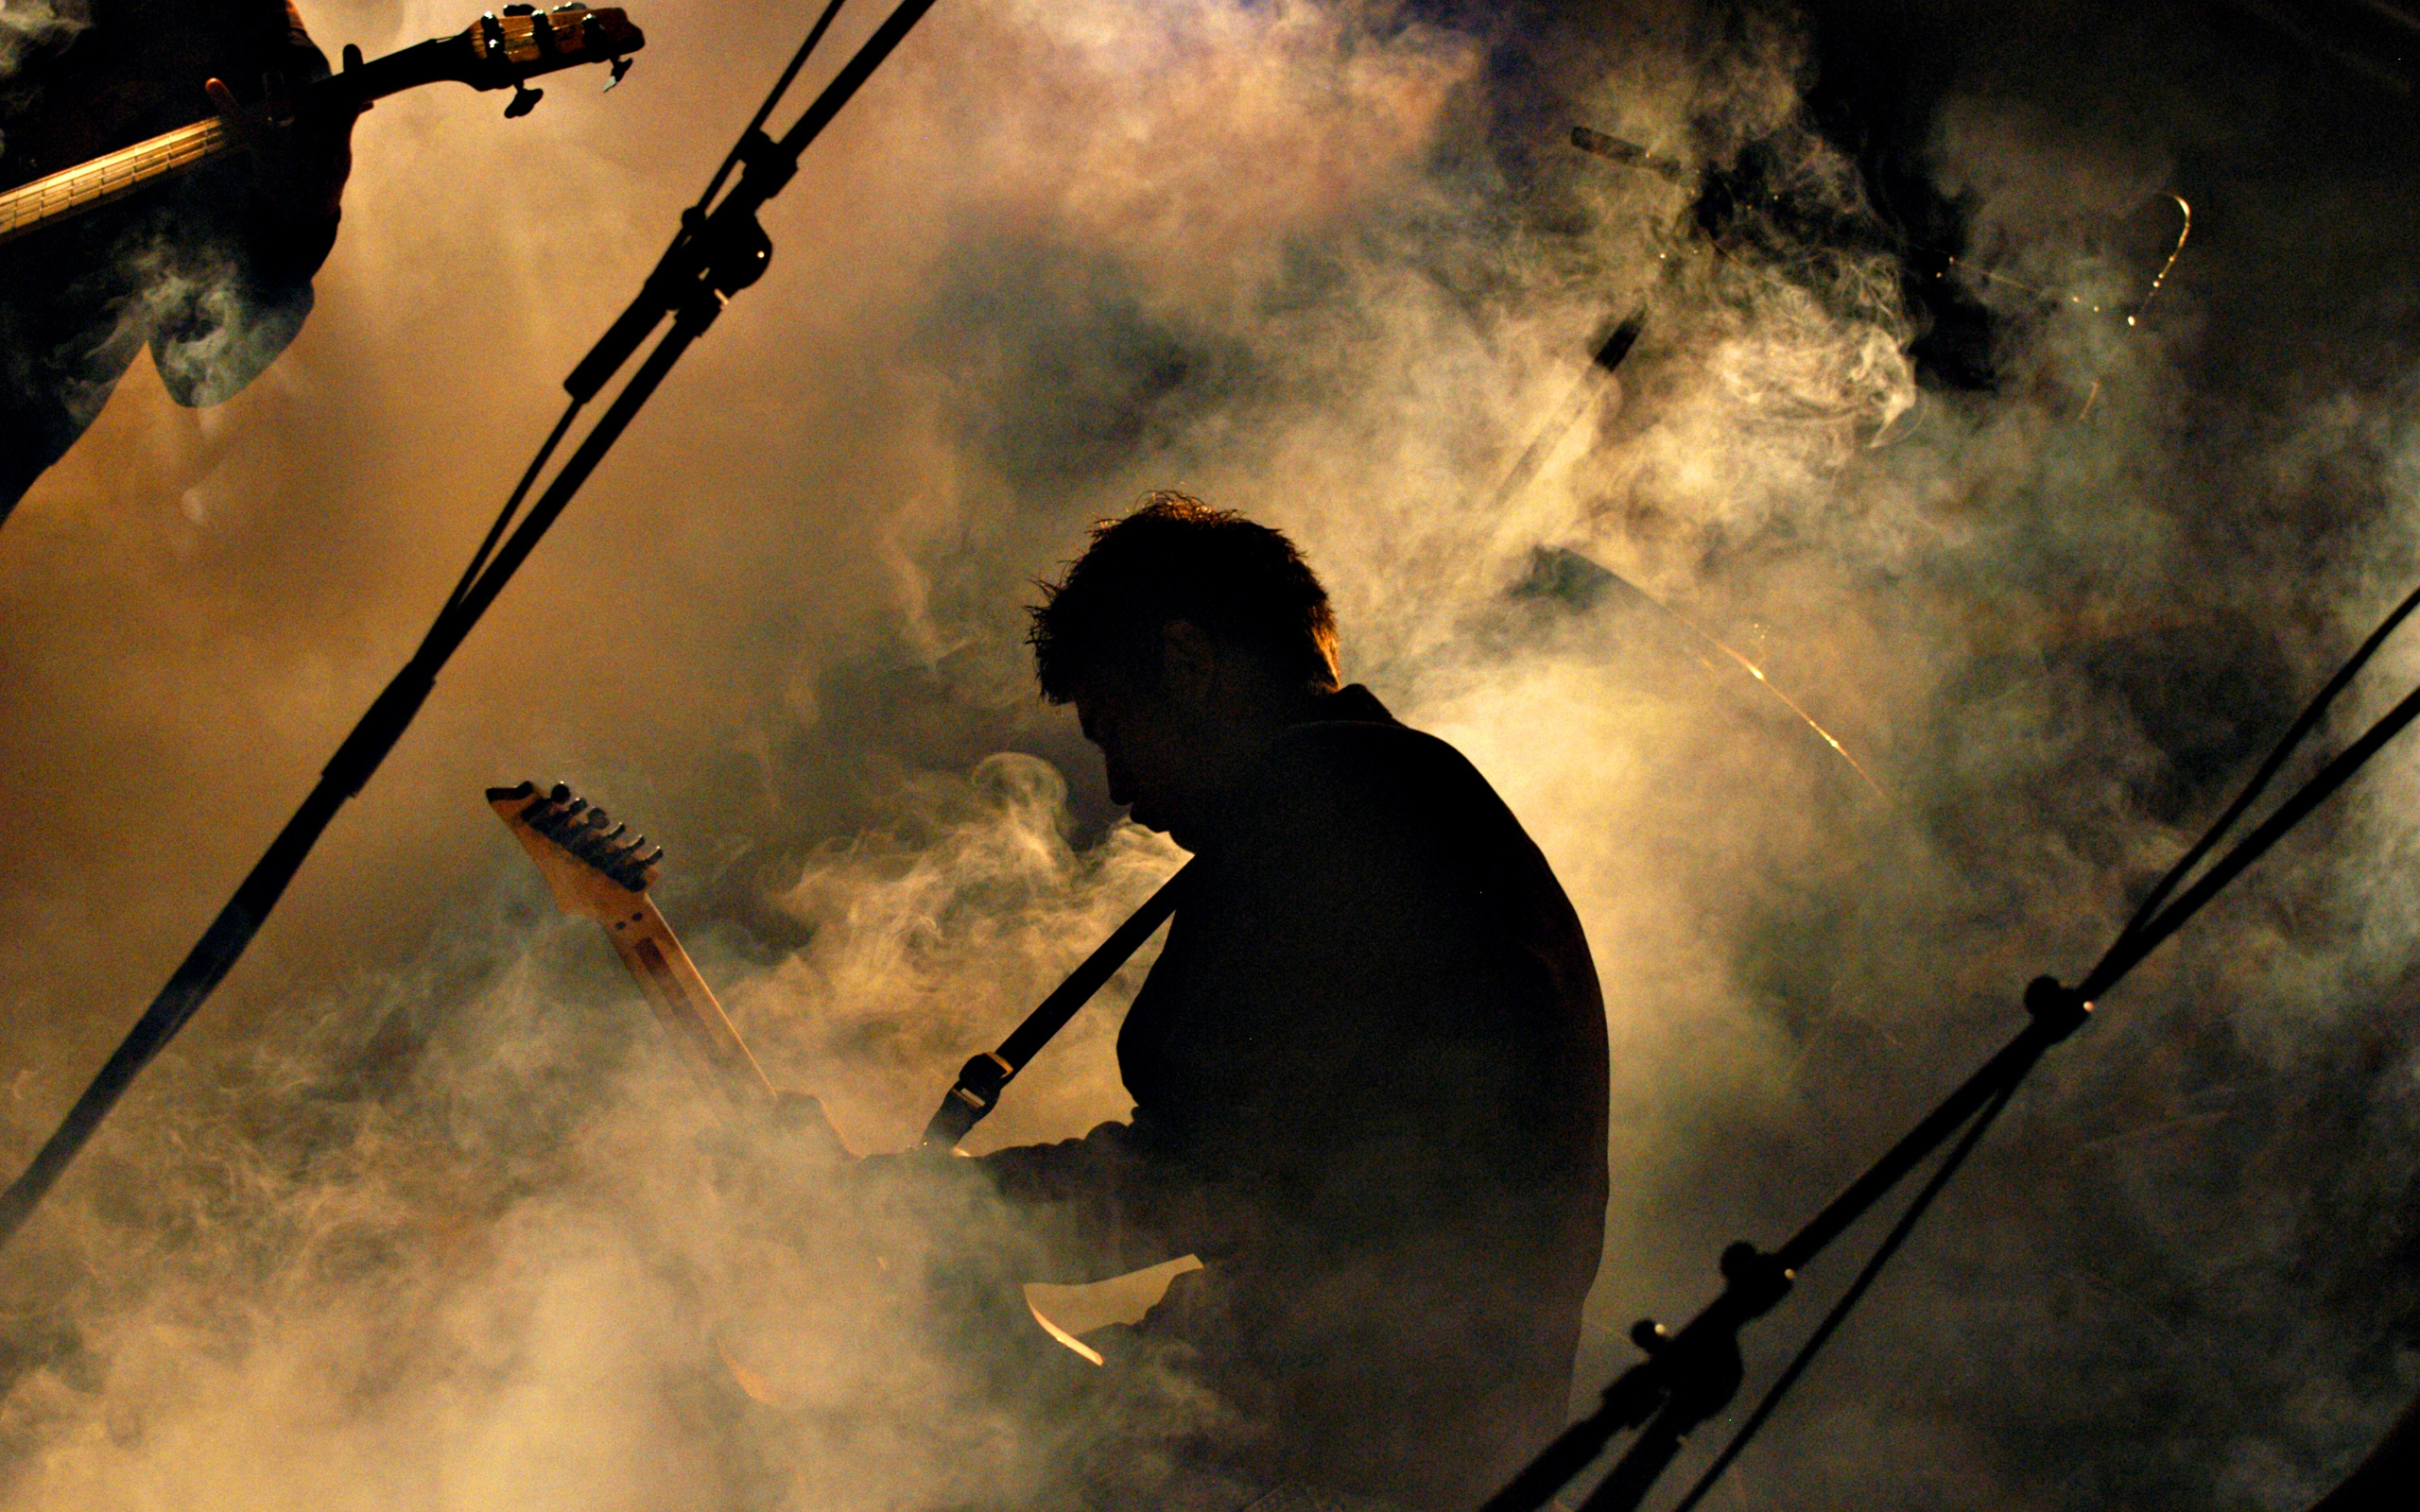 Rock Concert wallpapers and images   wallpapers pictures 2560x1600